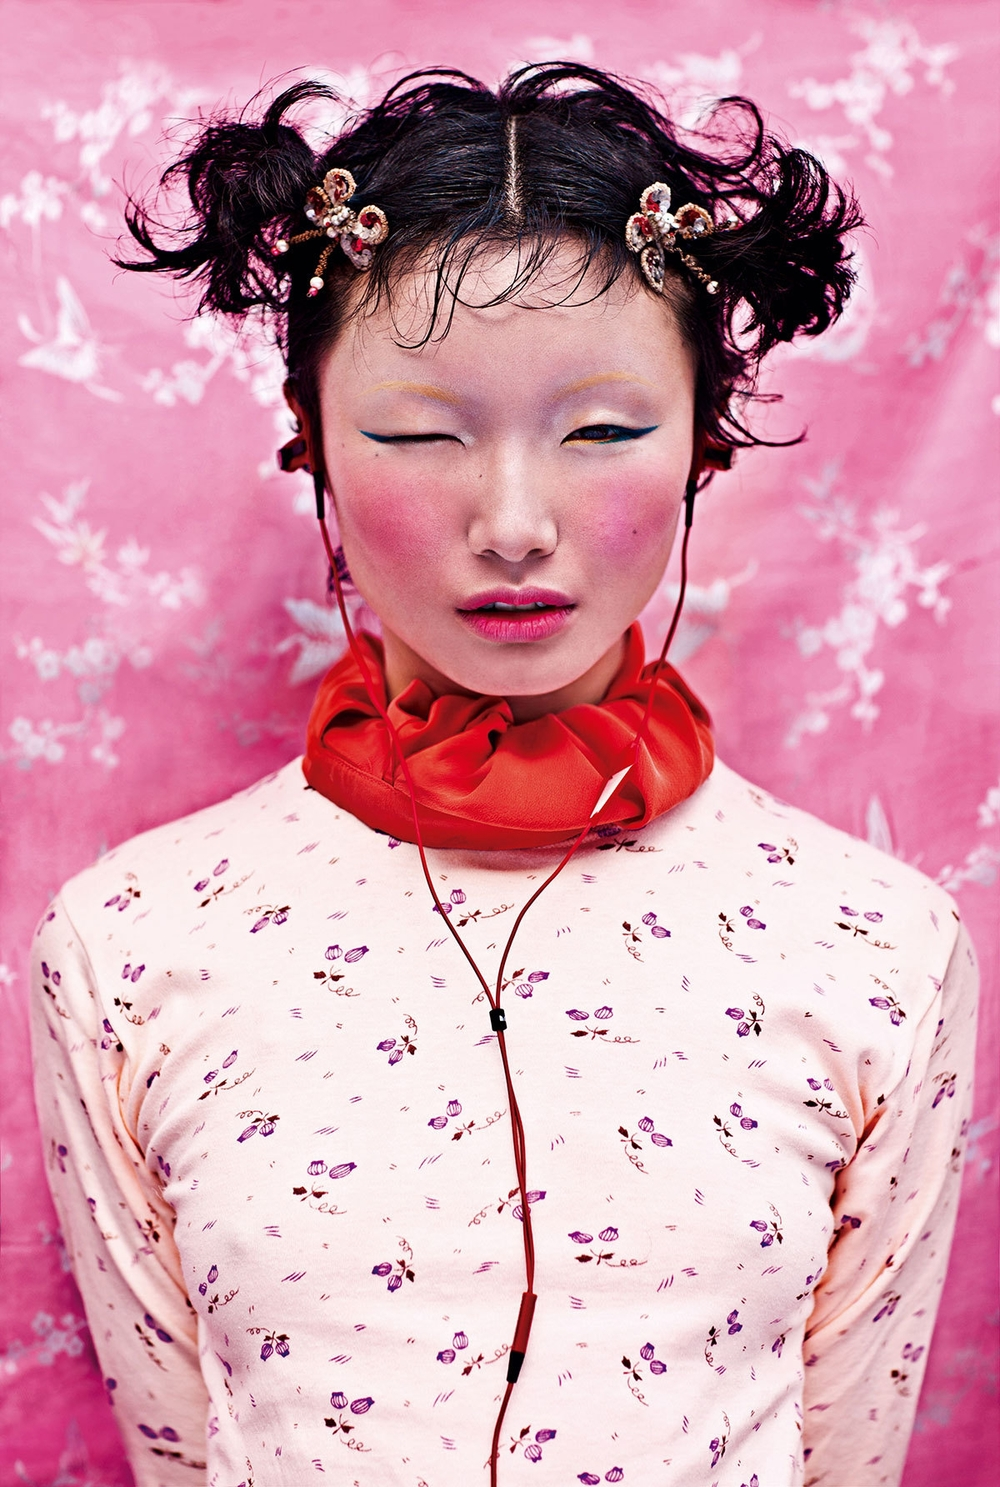 chen-man-magazine-cover-2-photography-of-china.jpg